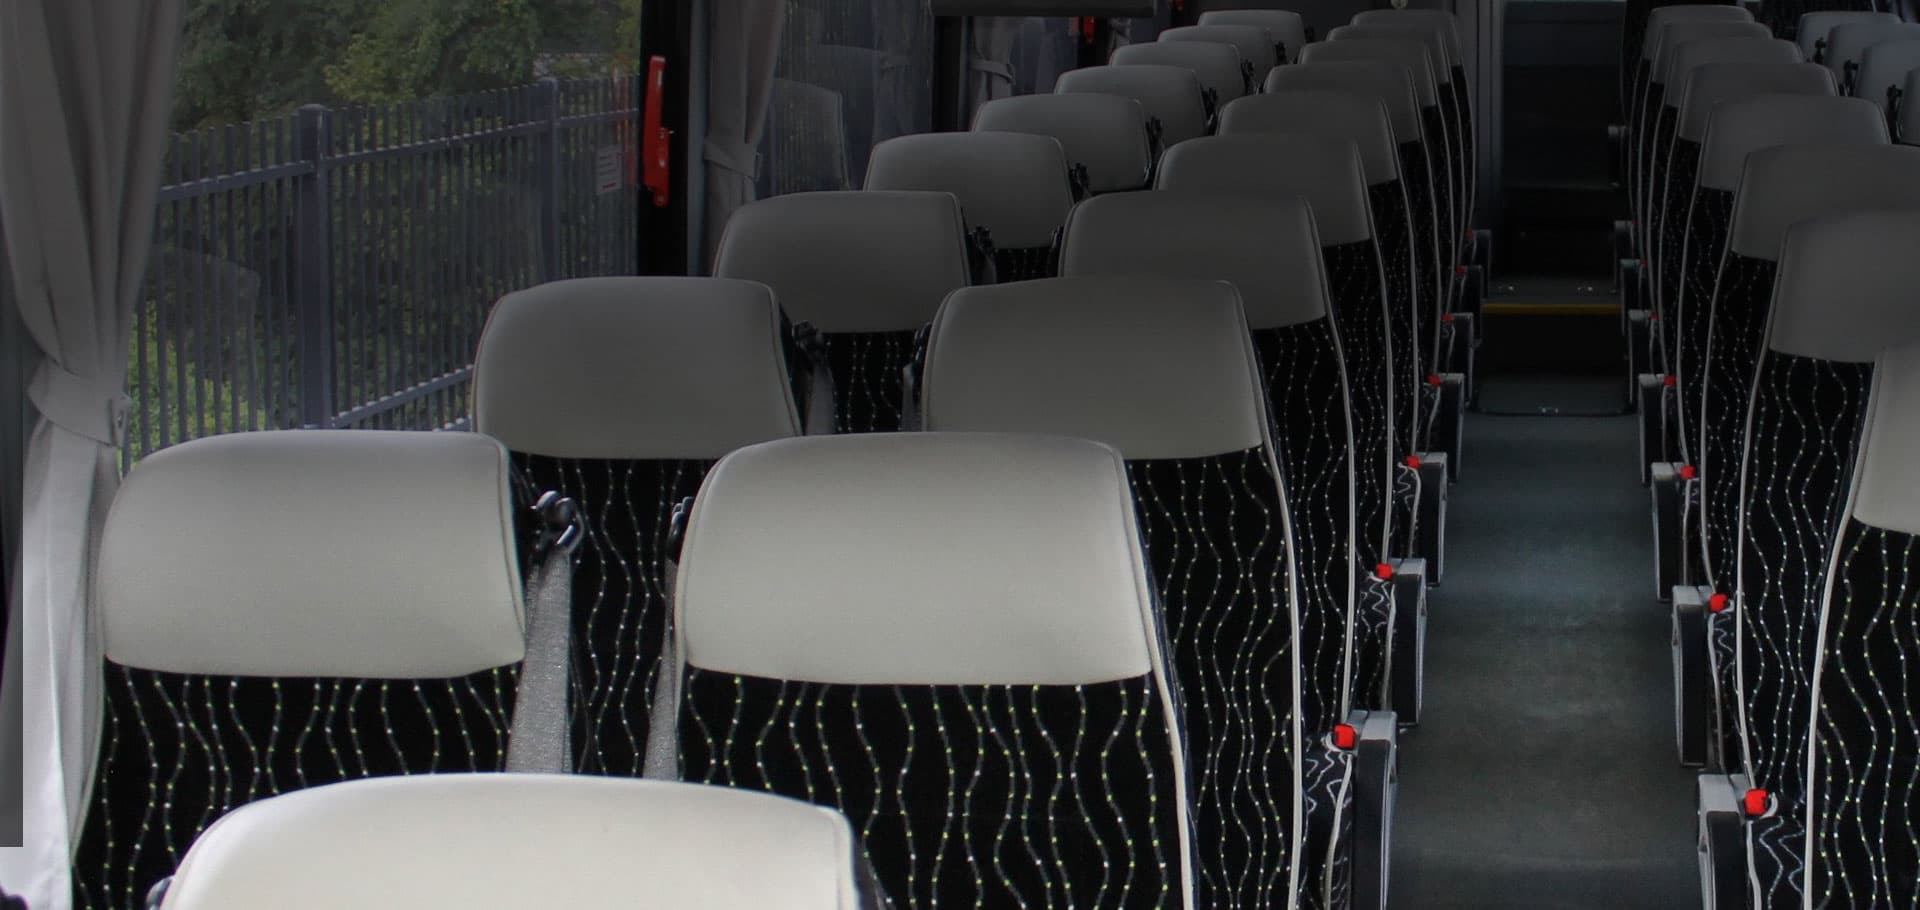 Bus Inside seats